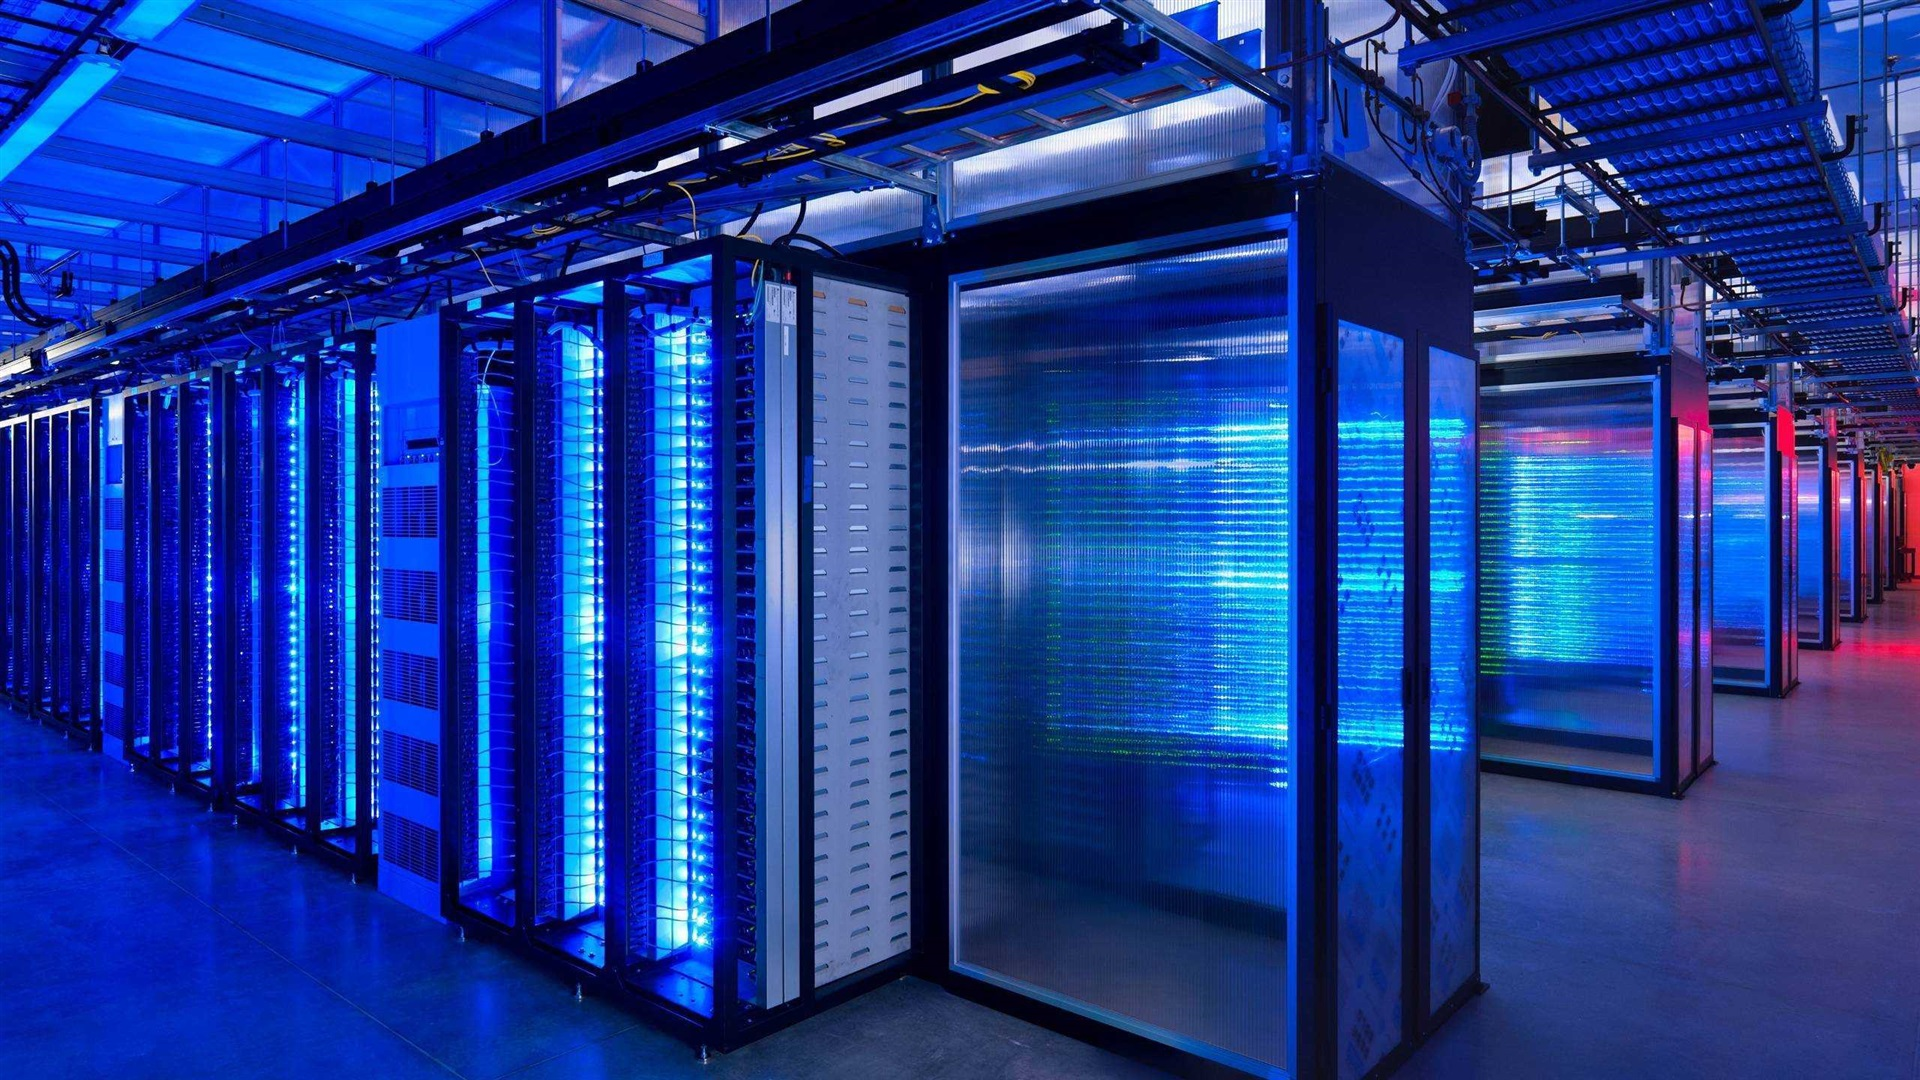 an in depth look at mainframe computers and supercomputers It's official: the united states is home to the world's fastest supercomputer but what exactly are supercomputers and why.